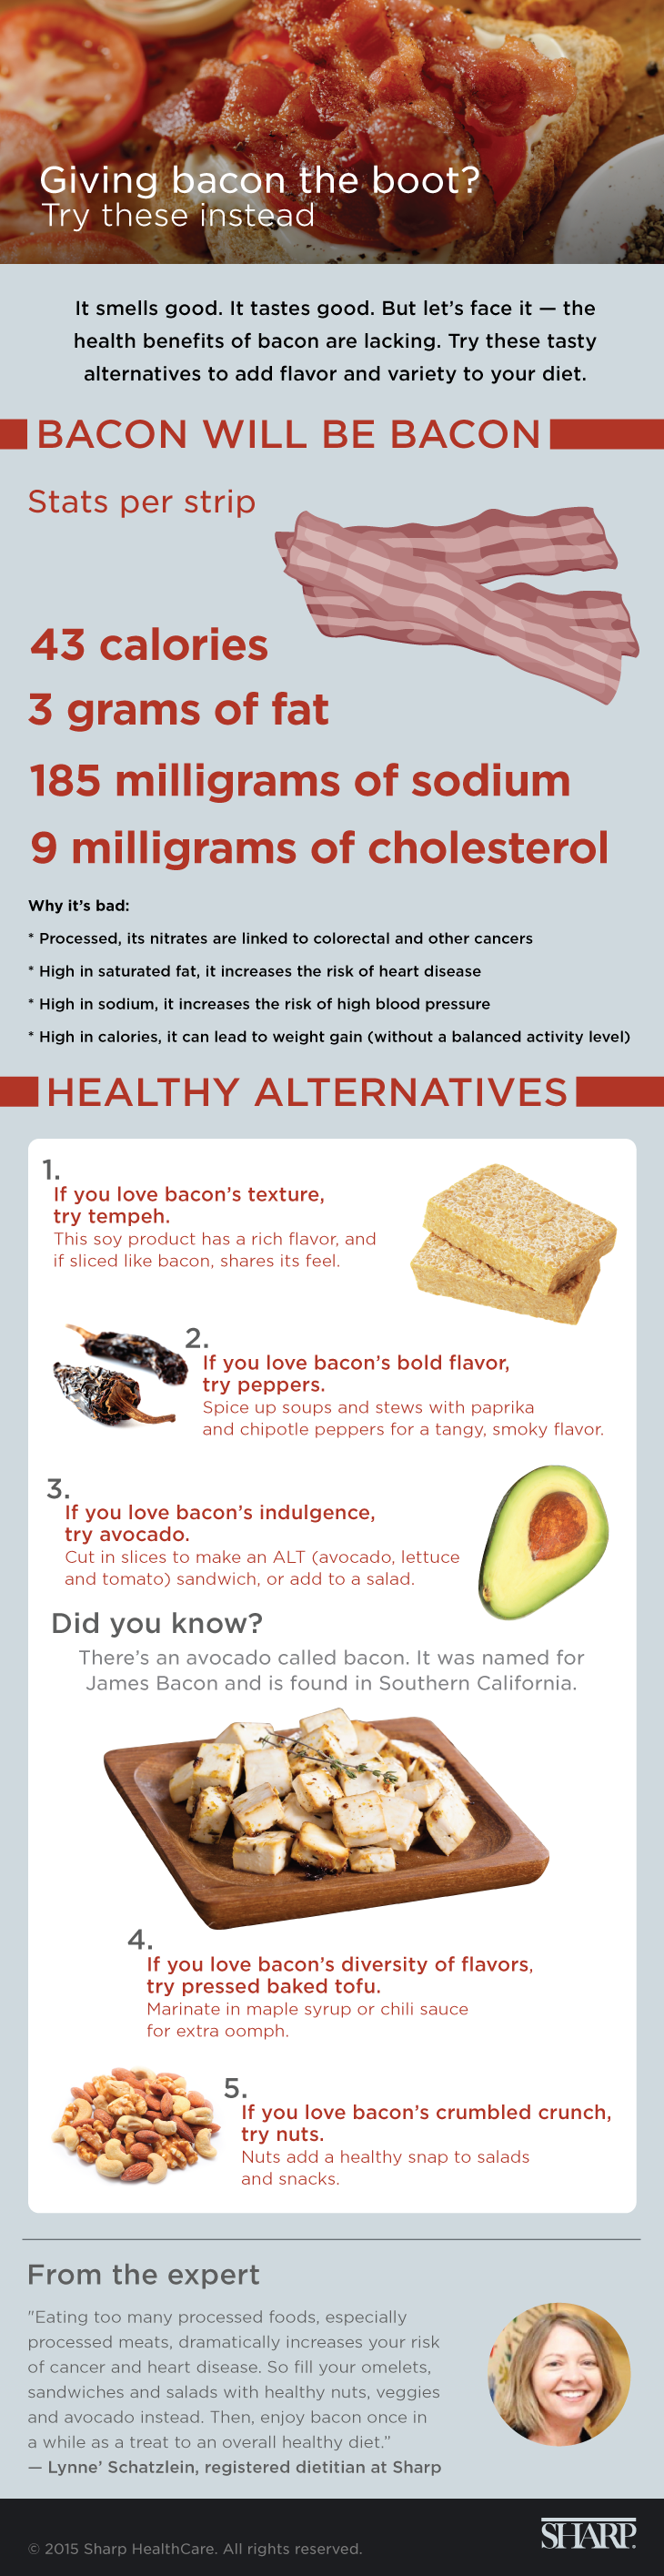 Bacon alternatives